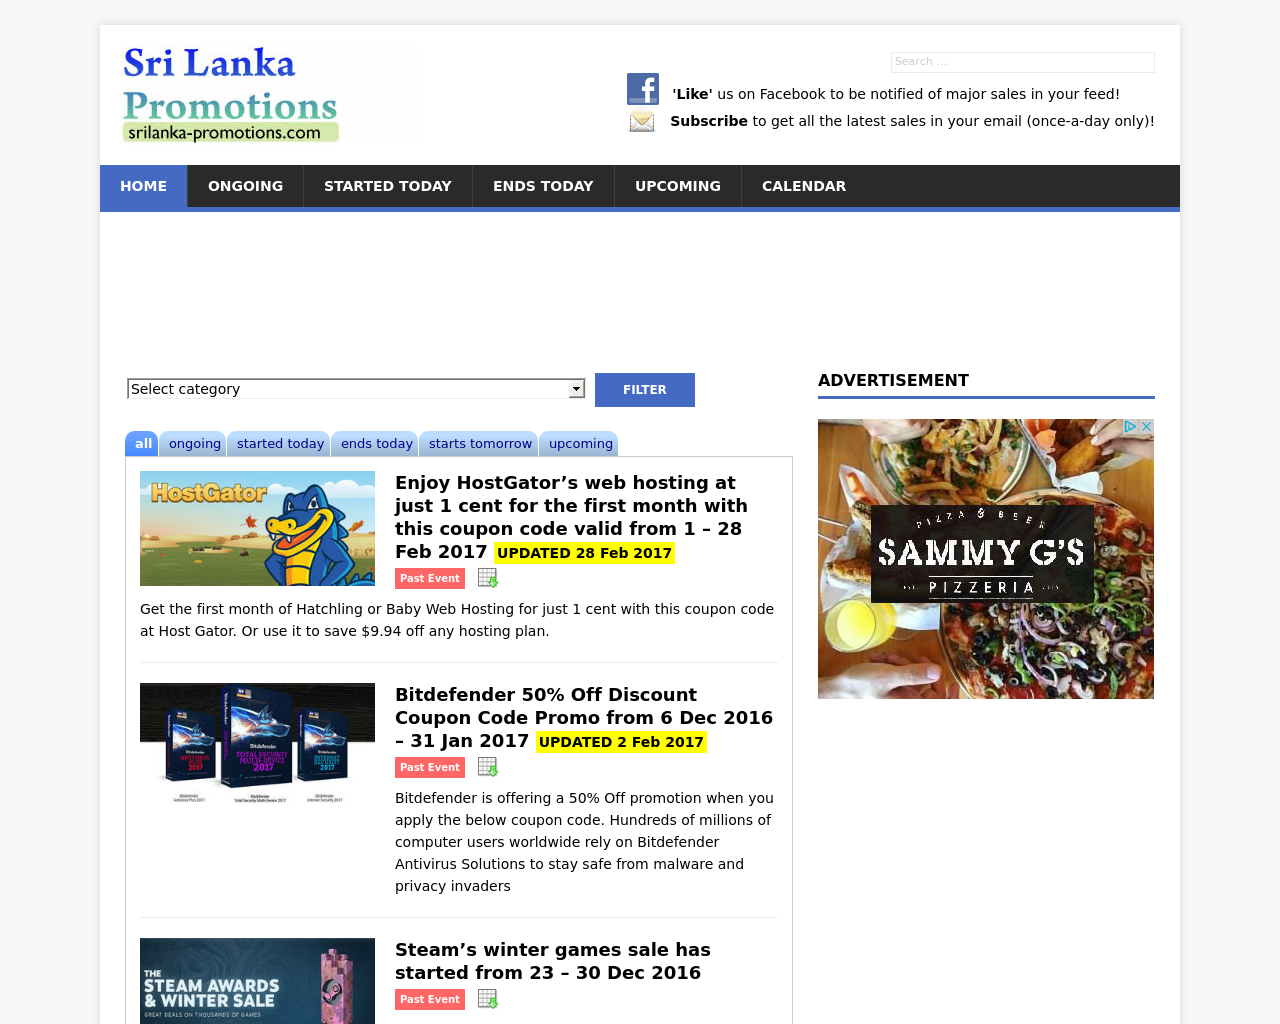 Sri-Lanka-Promotions-Advertising-Reviews-Pricing